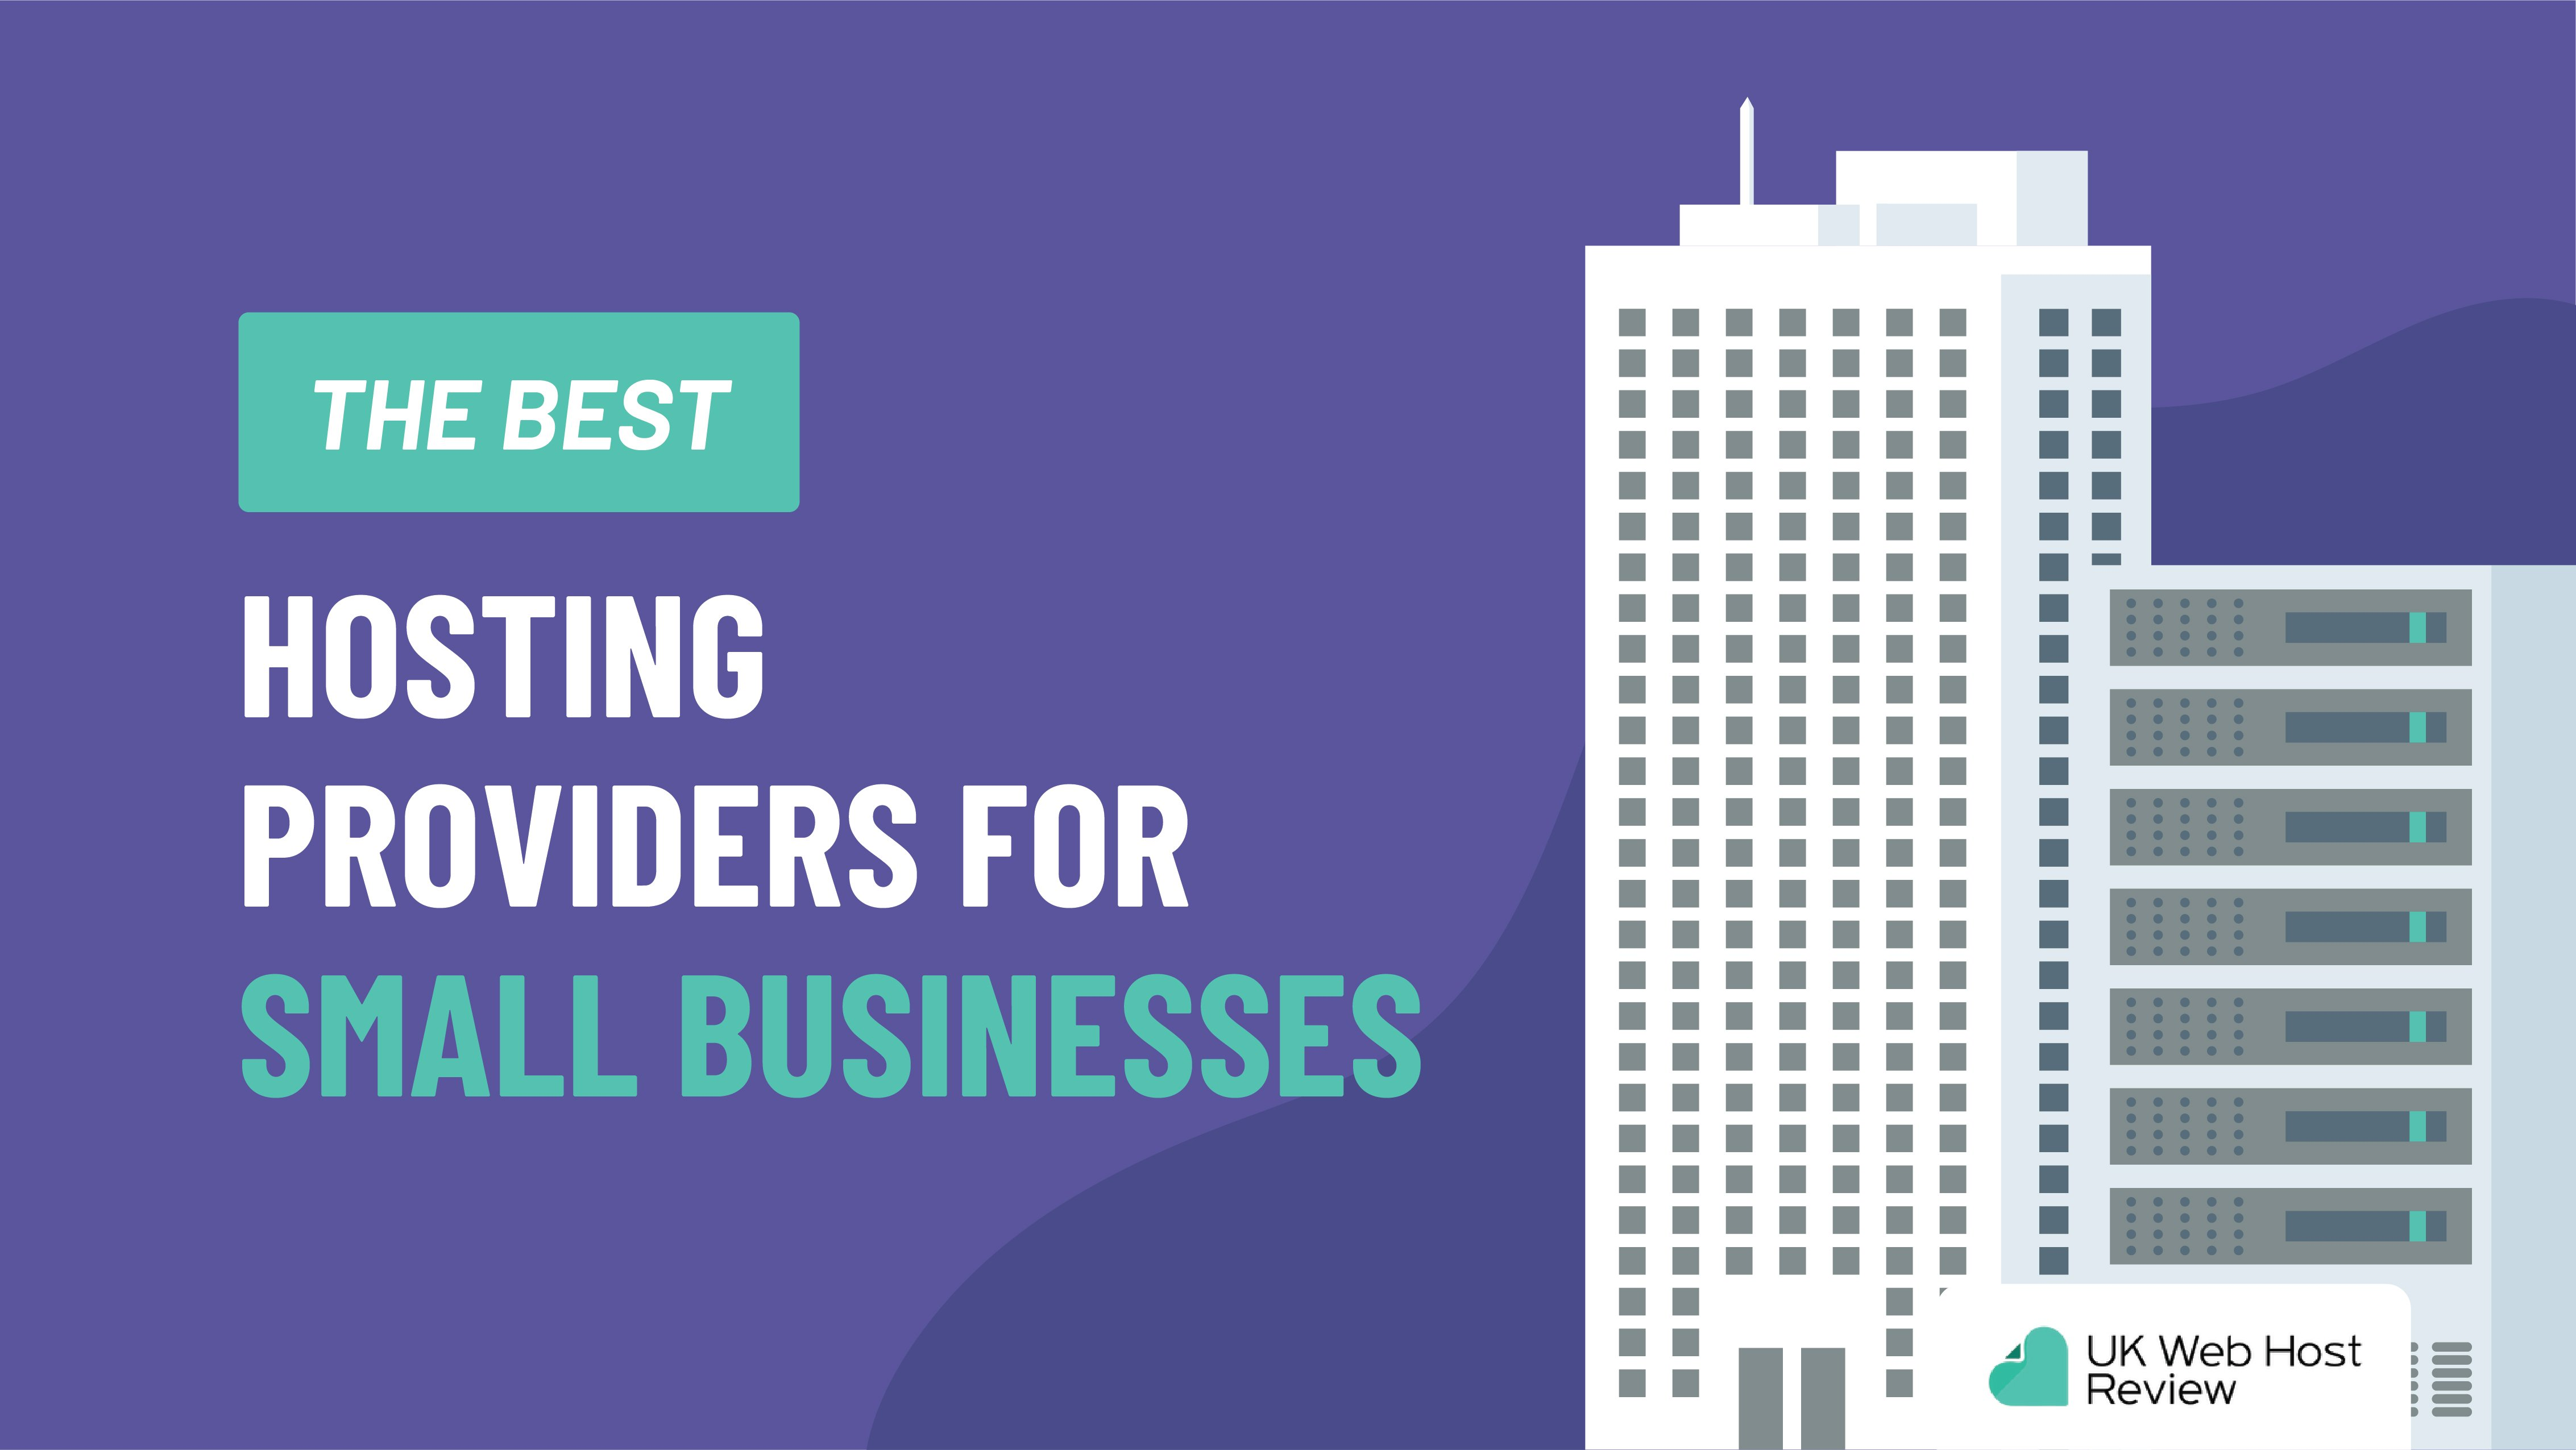 The Best Hosting Providers for Small Businesses